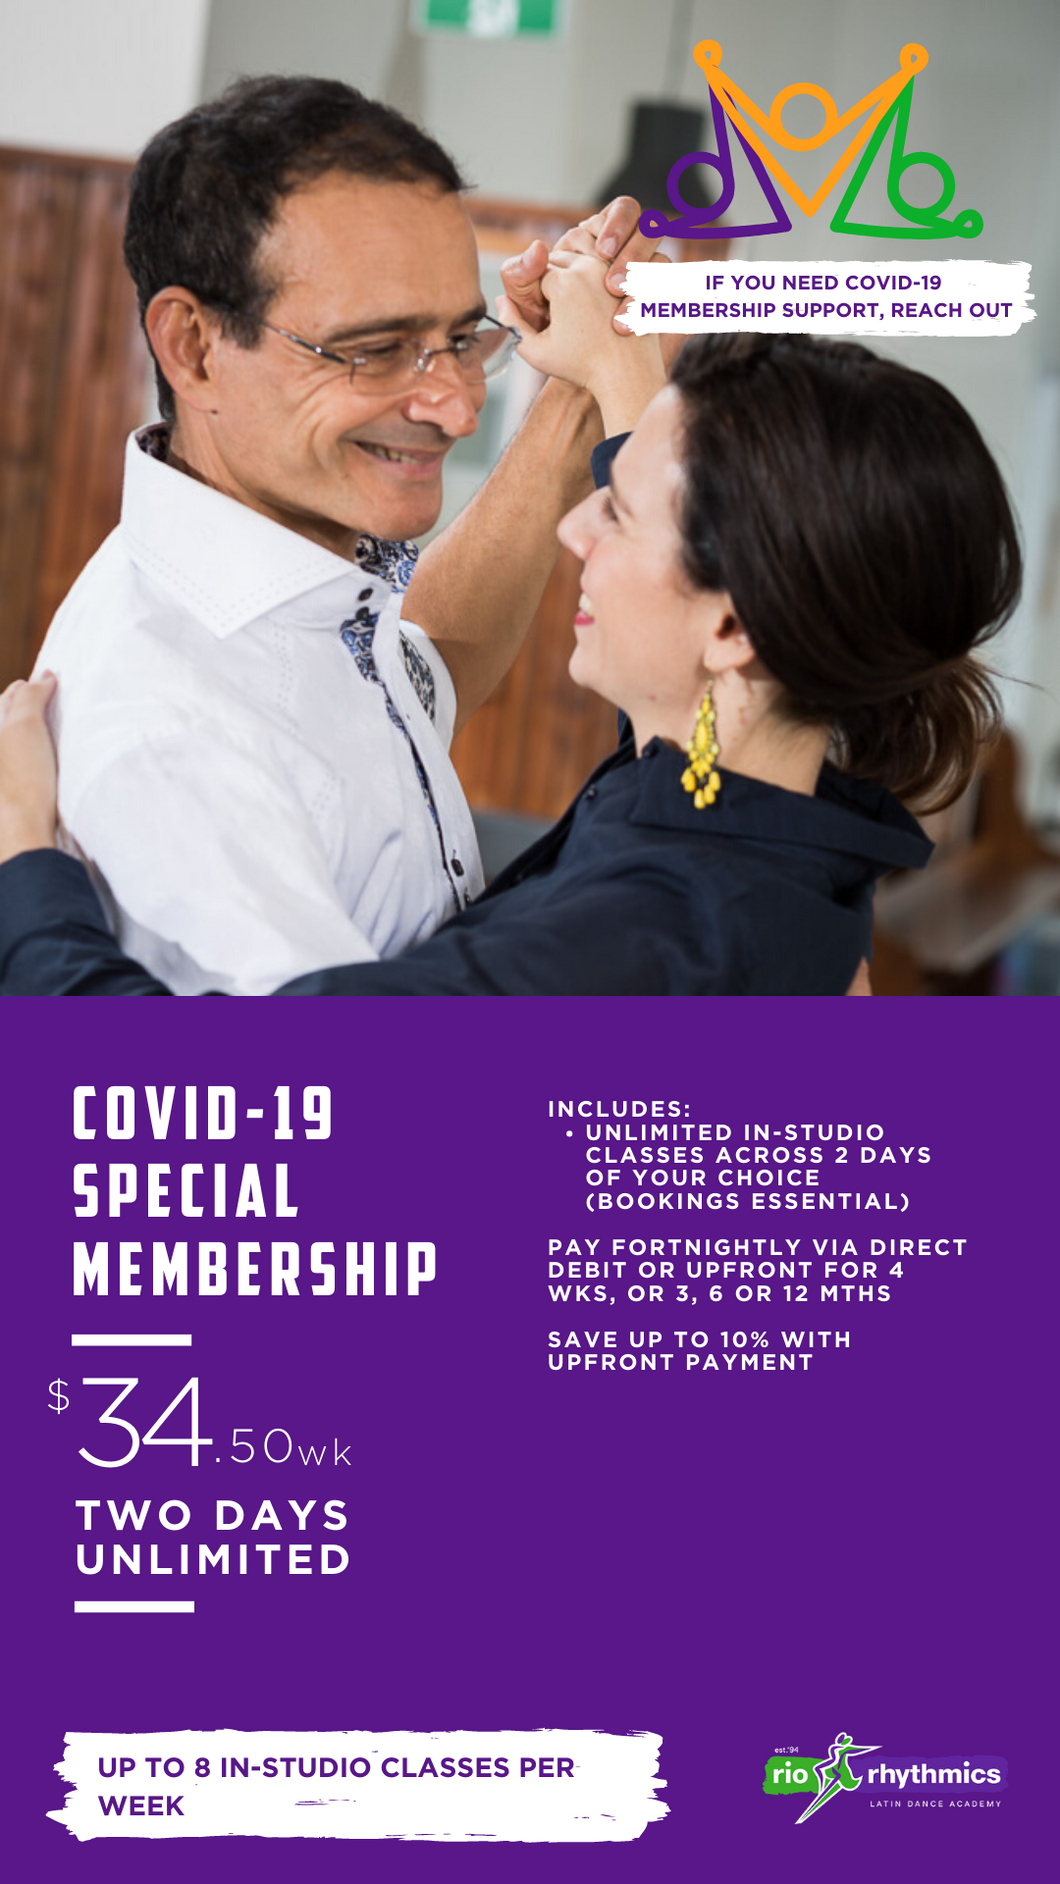 Two Day Membership | $34.50wk